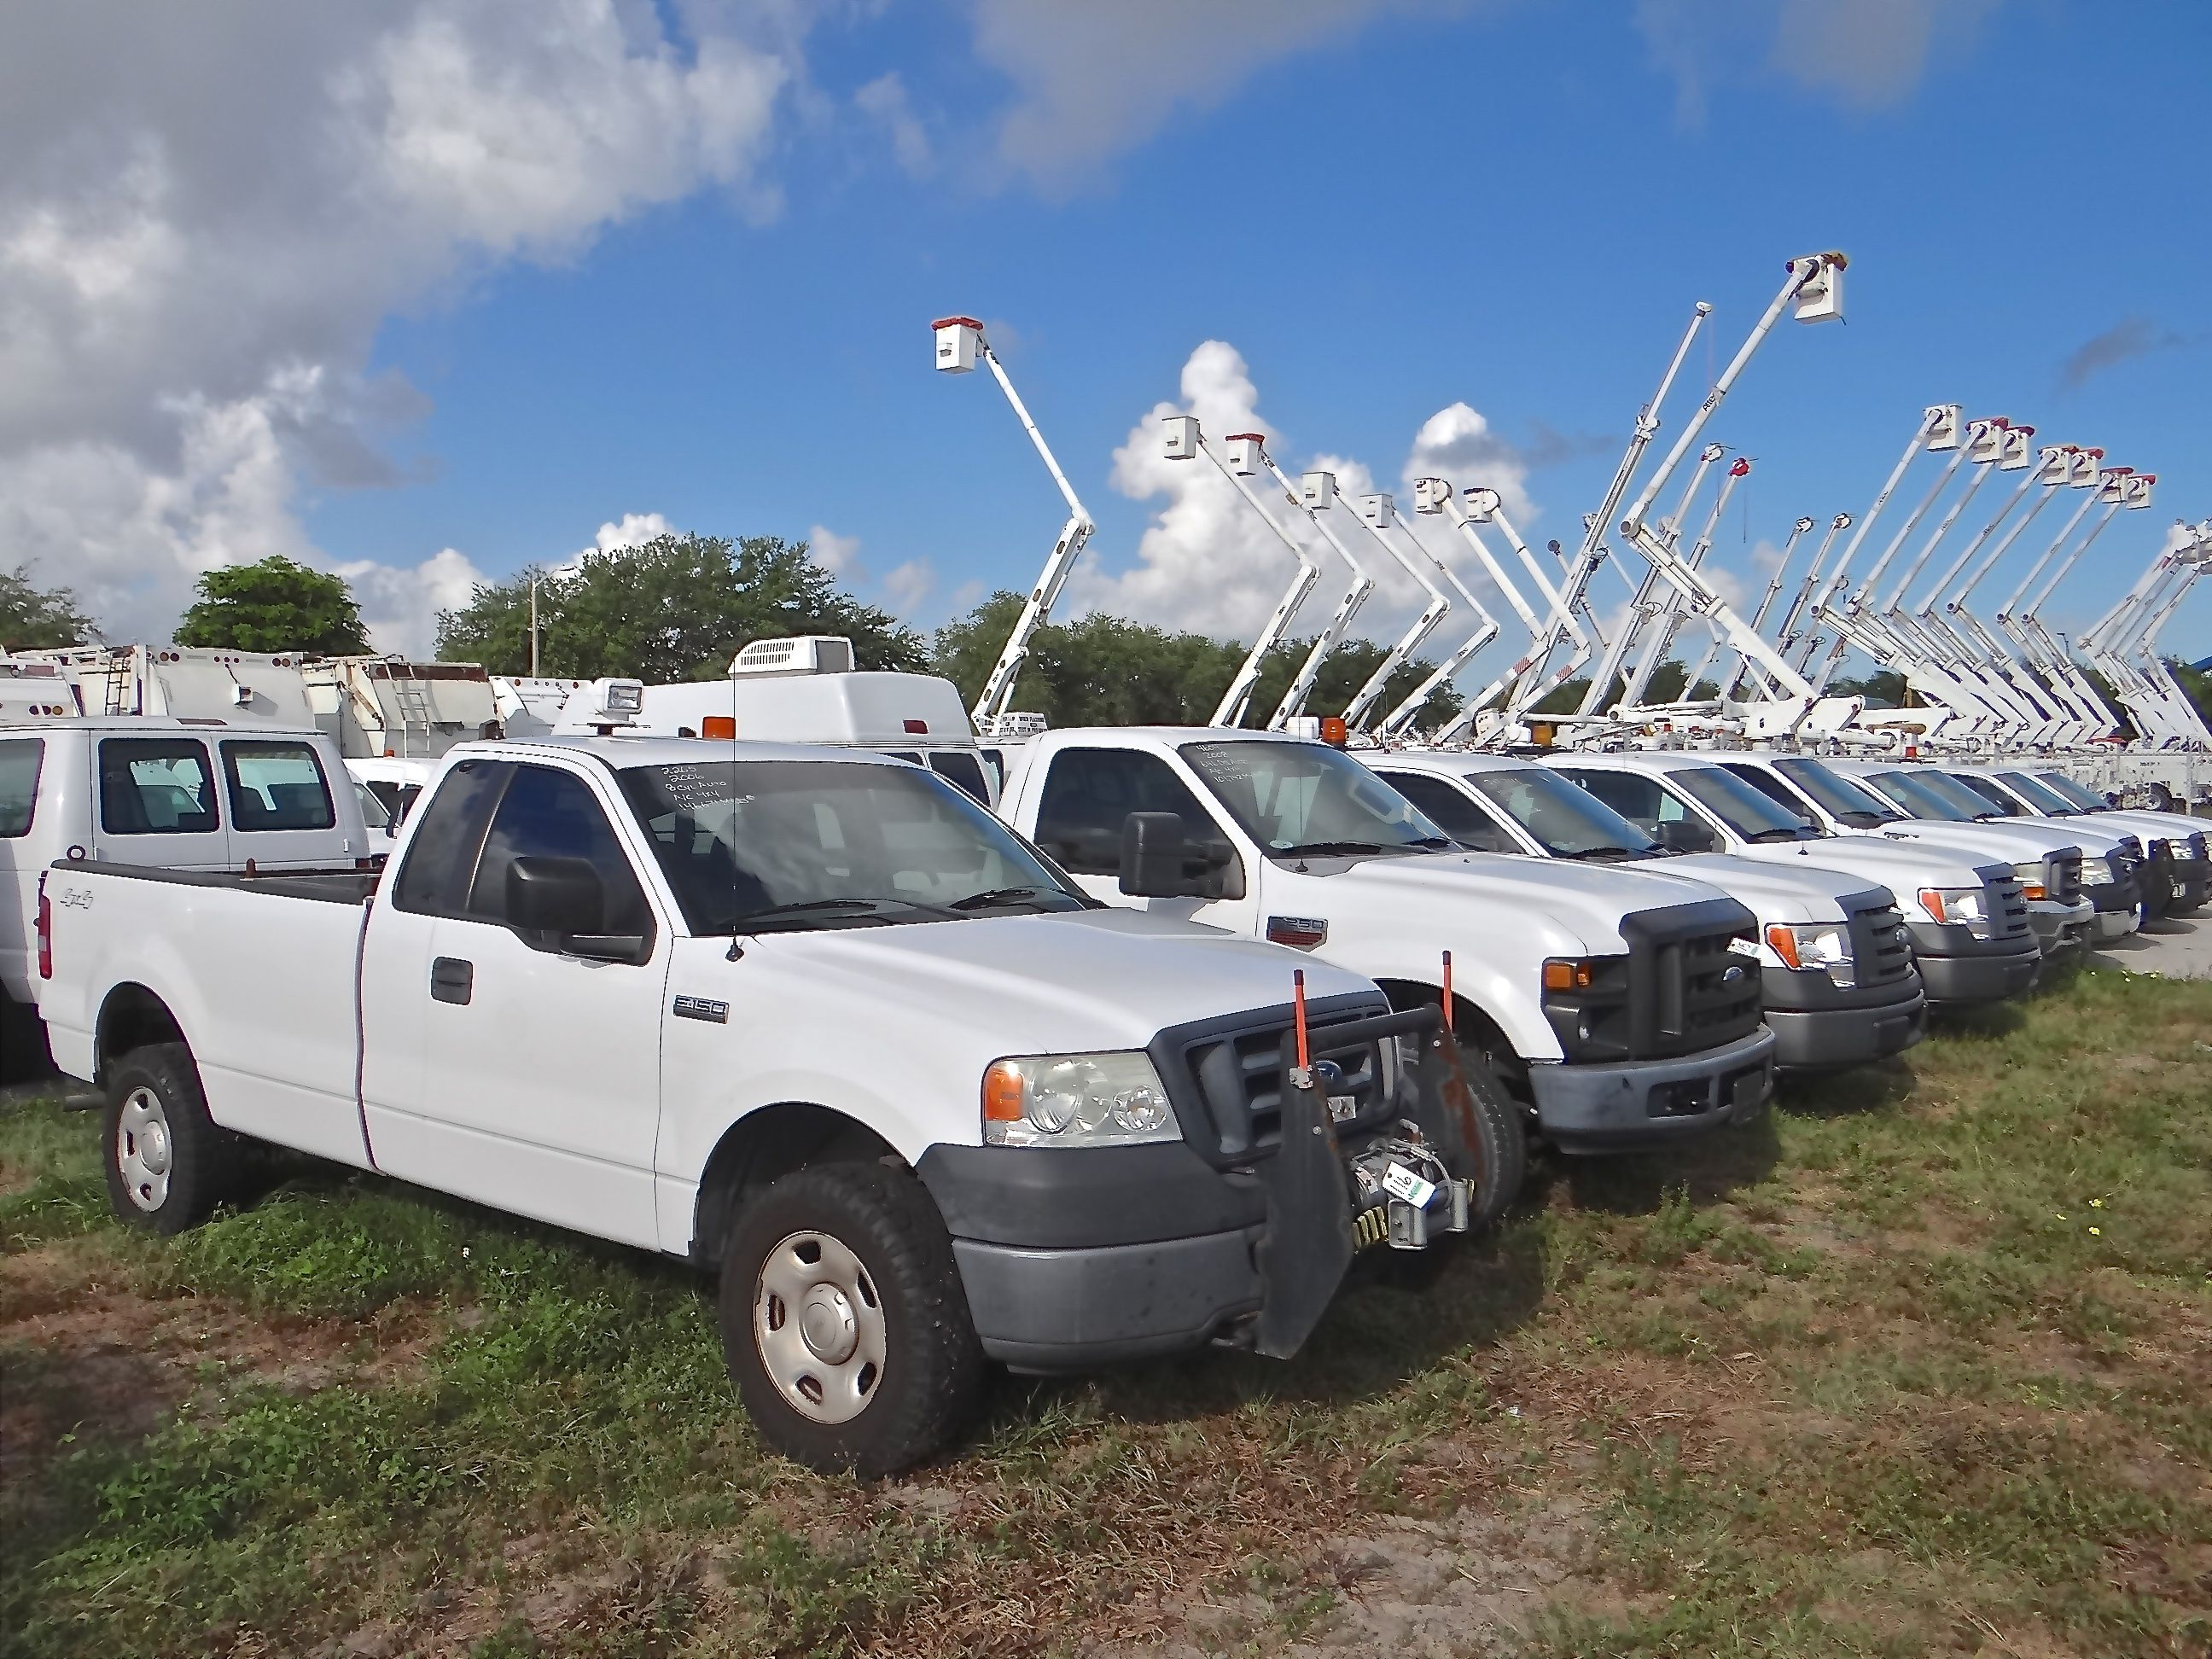 Fleet Owners Such As Fpl And Area Contractors And Rental Fleets Sell Surplus And Retiring Vehicles And Equipment Through Riviera Beach Rapids Water Park Fleet